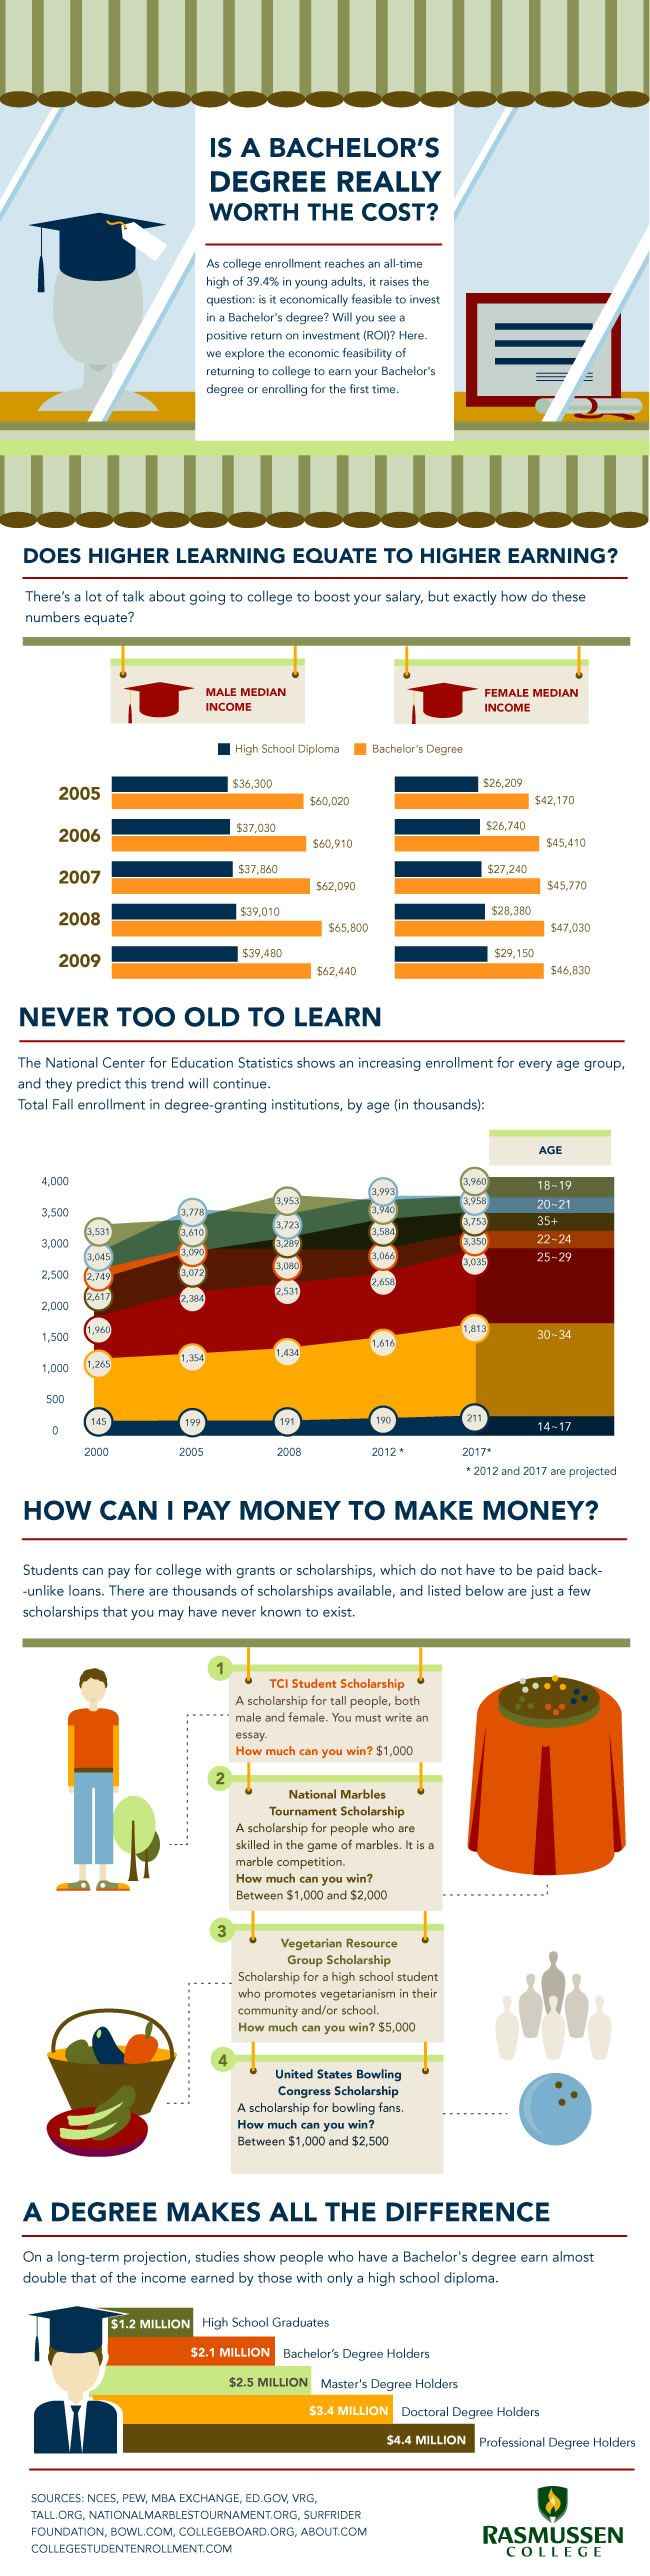 infographic: Is a bachelor's degree really worth the cost?